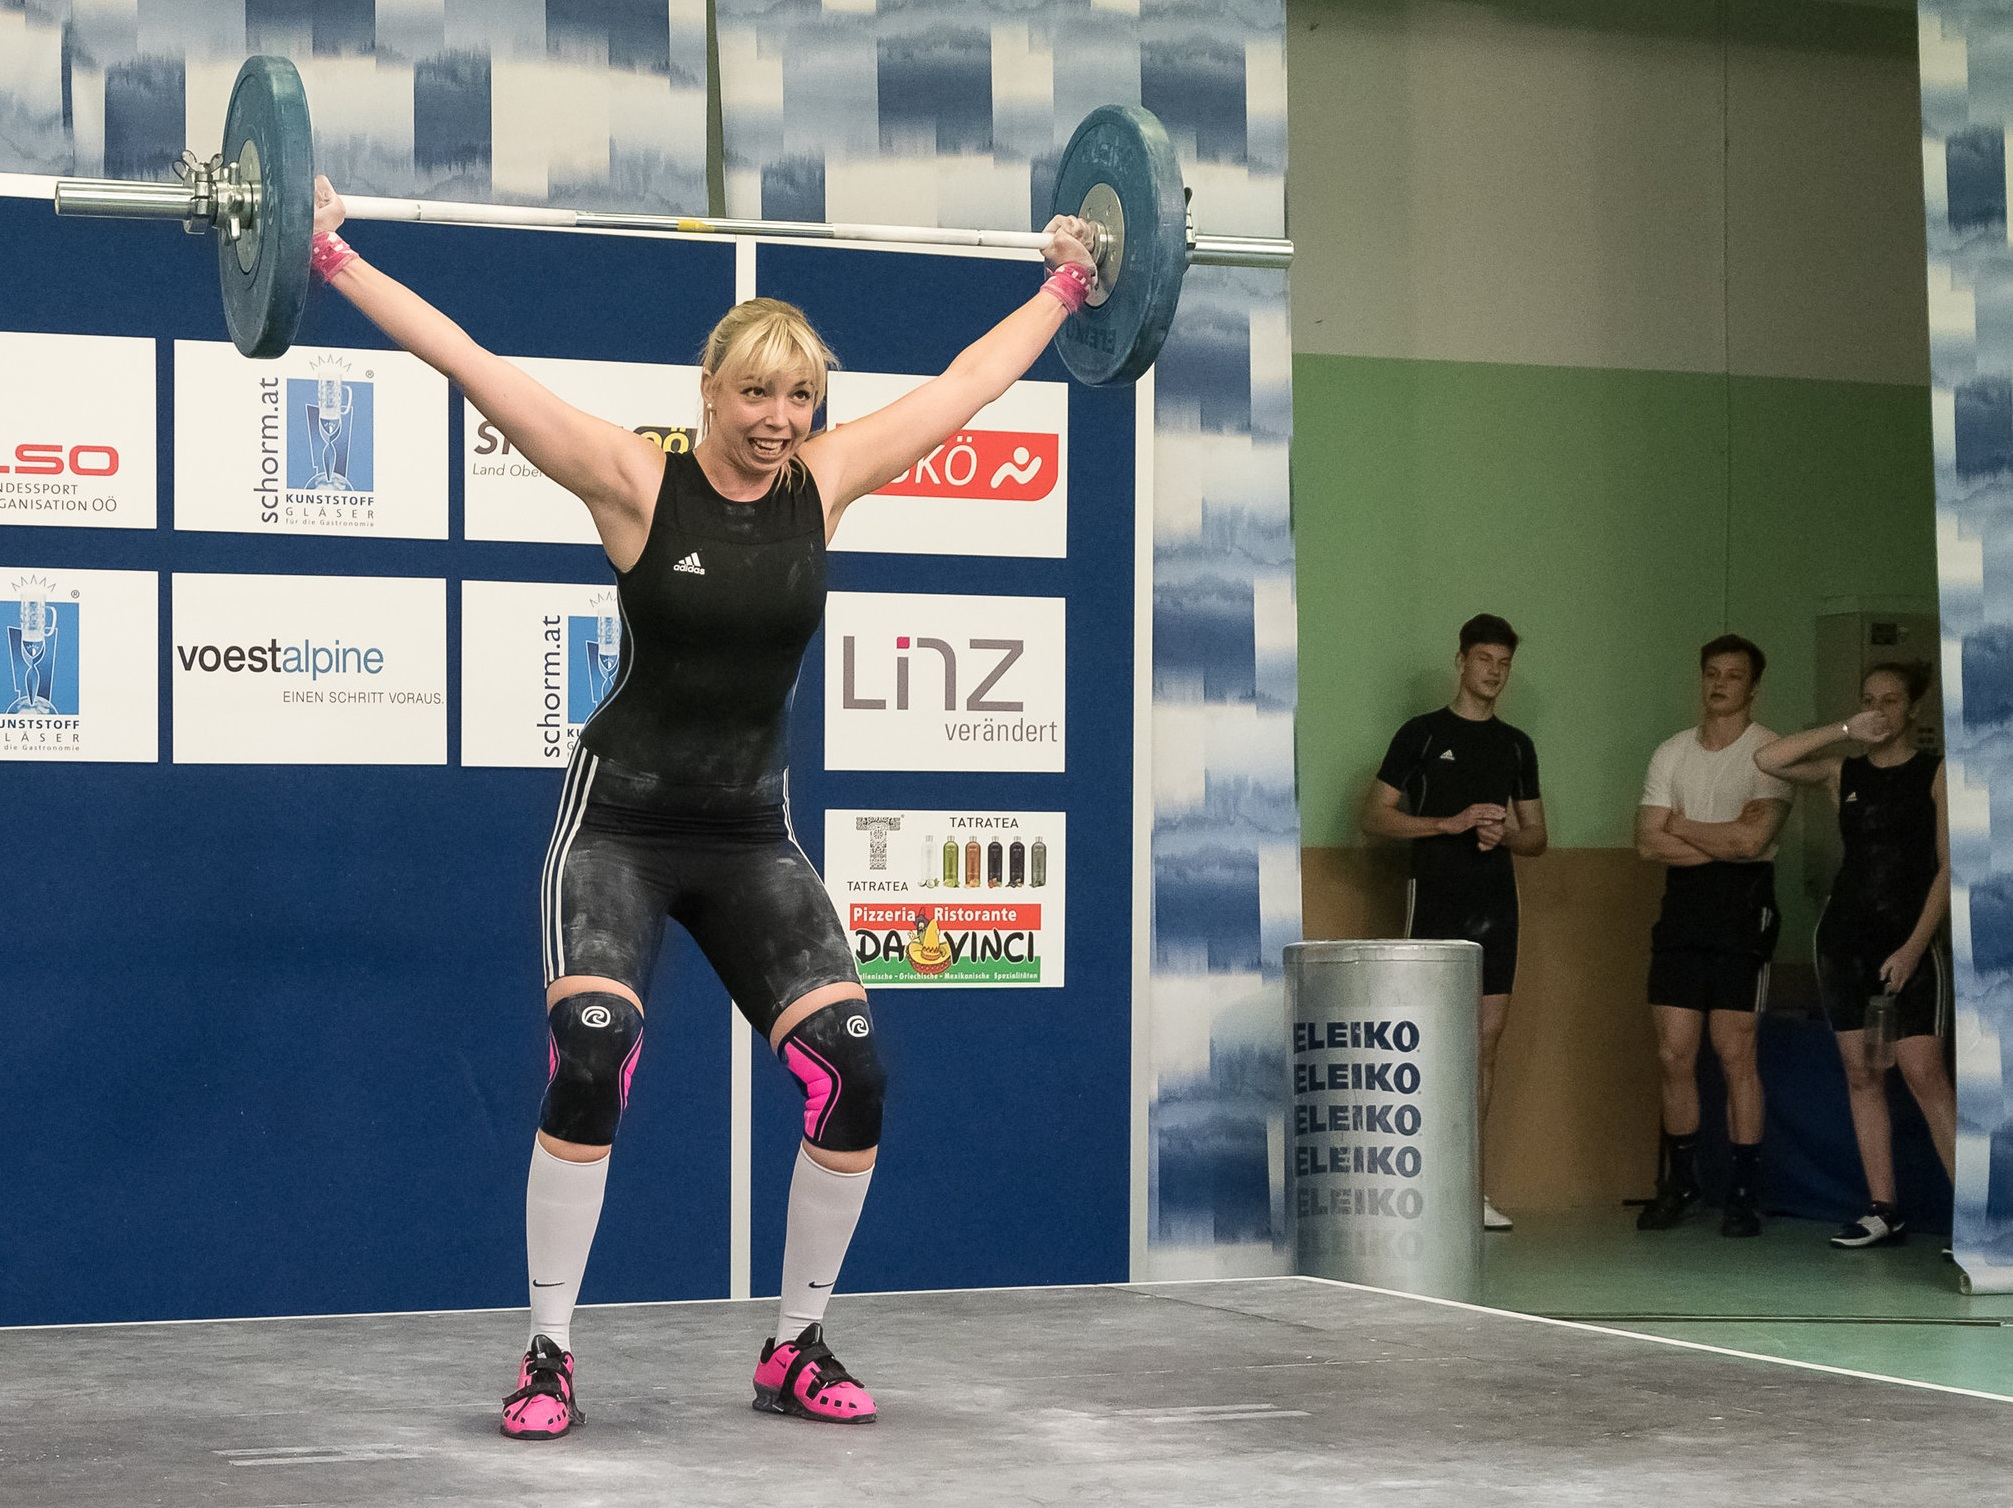 Stefanie Dröxler with a successful attempt (snatch) during third round of Austrian Weightlifting Bundesliga.  Isiwal/Wikimedia Commons/CC BY-SA 4.0 [CC BY-SA 4.0 (https://creativecommons.org/licenses/by-sa/4.0)]